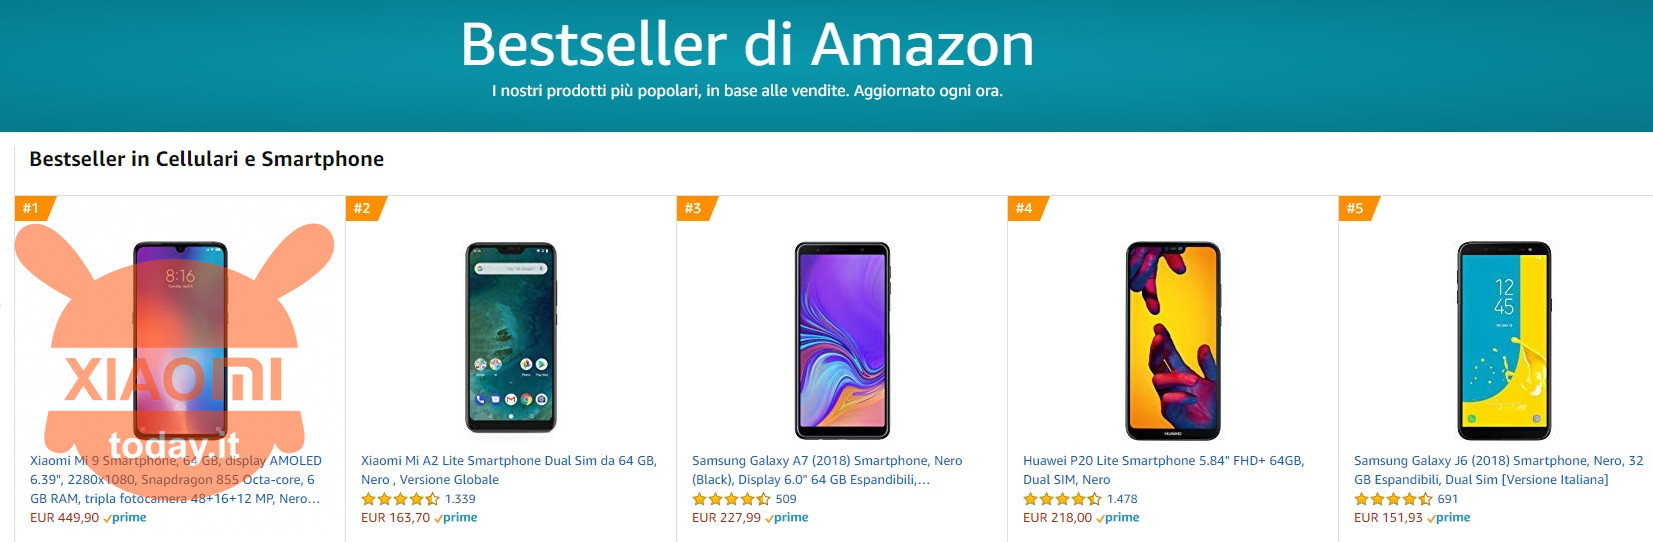 Xiaomi Mi 9: record sales in both China and Italy  It is already